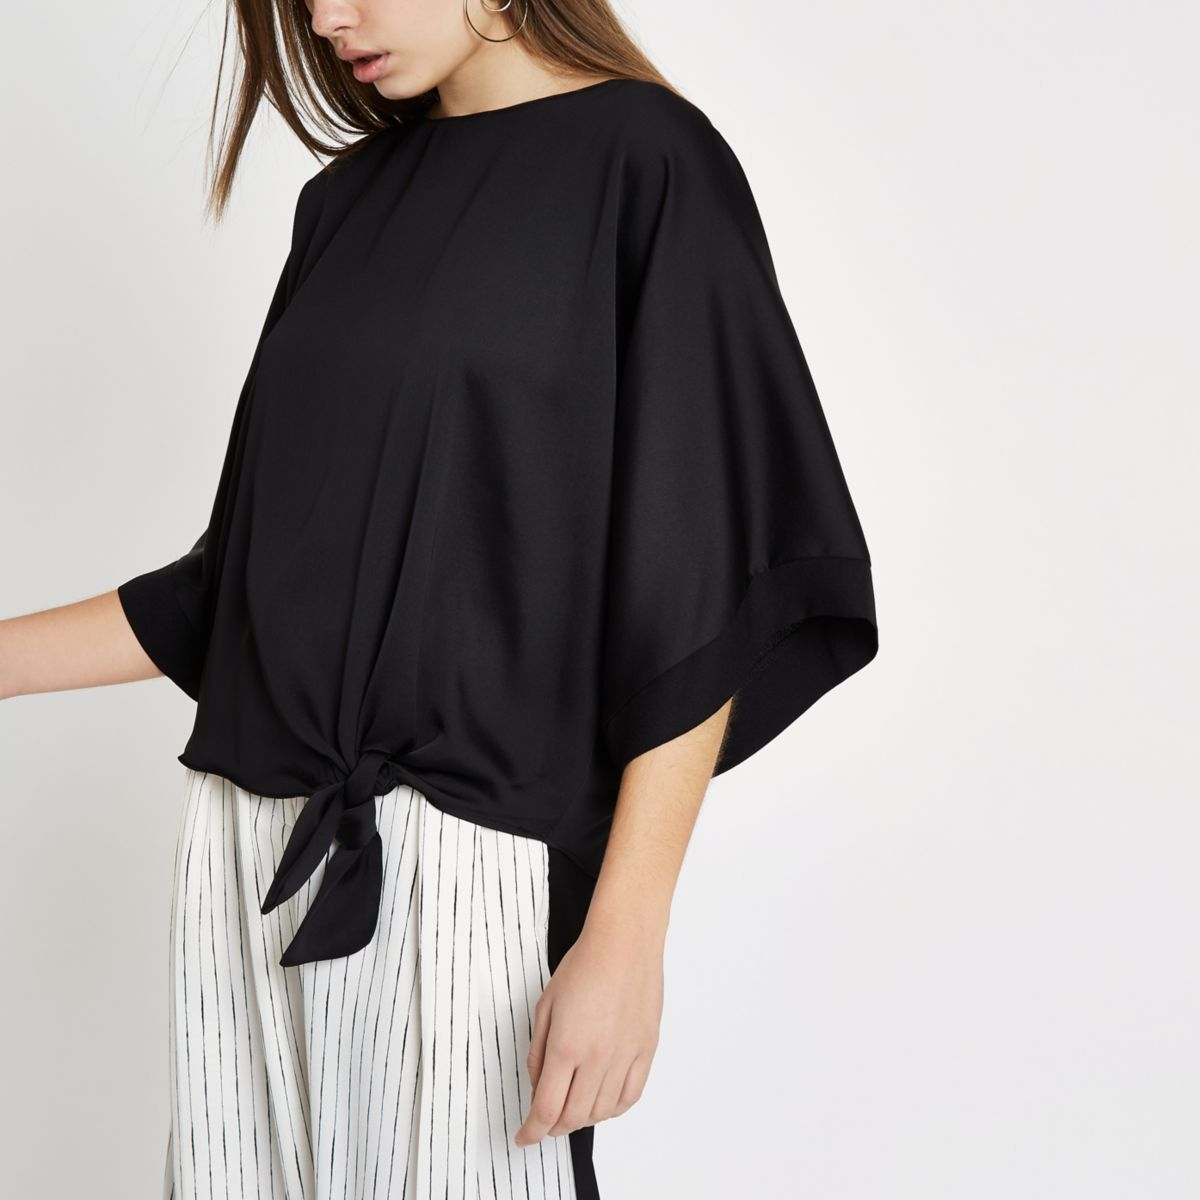 Black satin knot side T-shirt